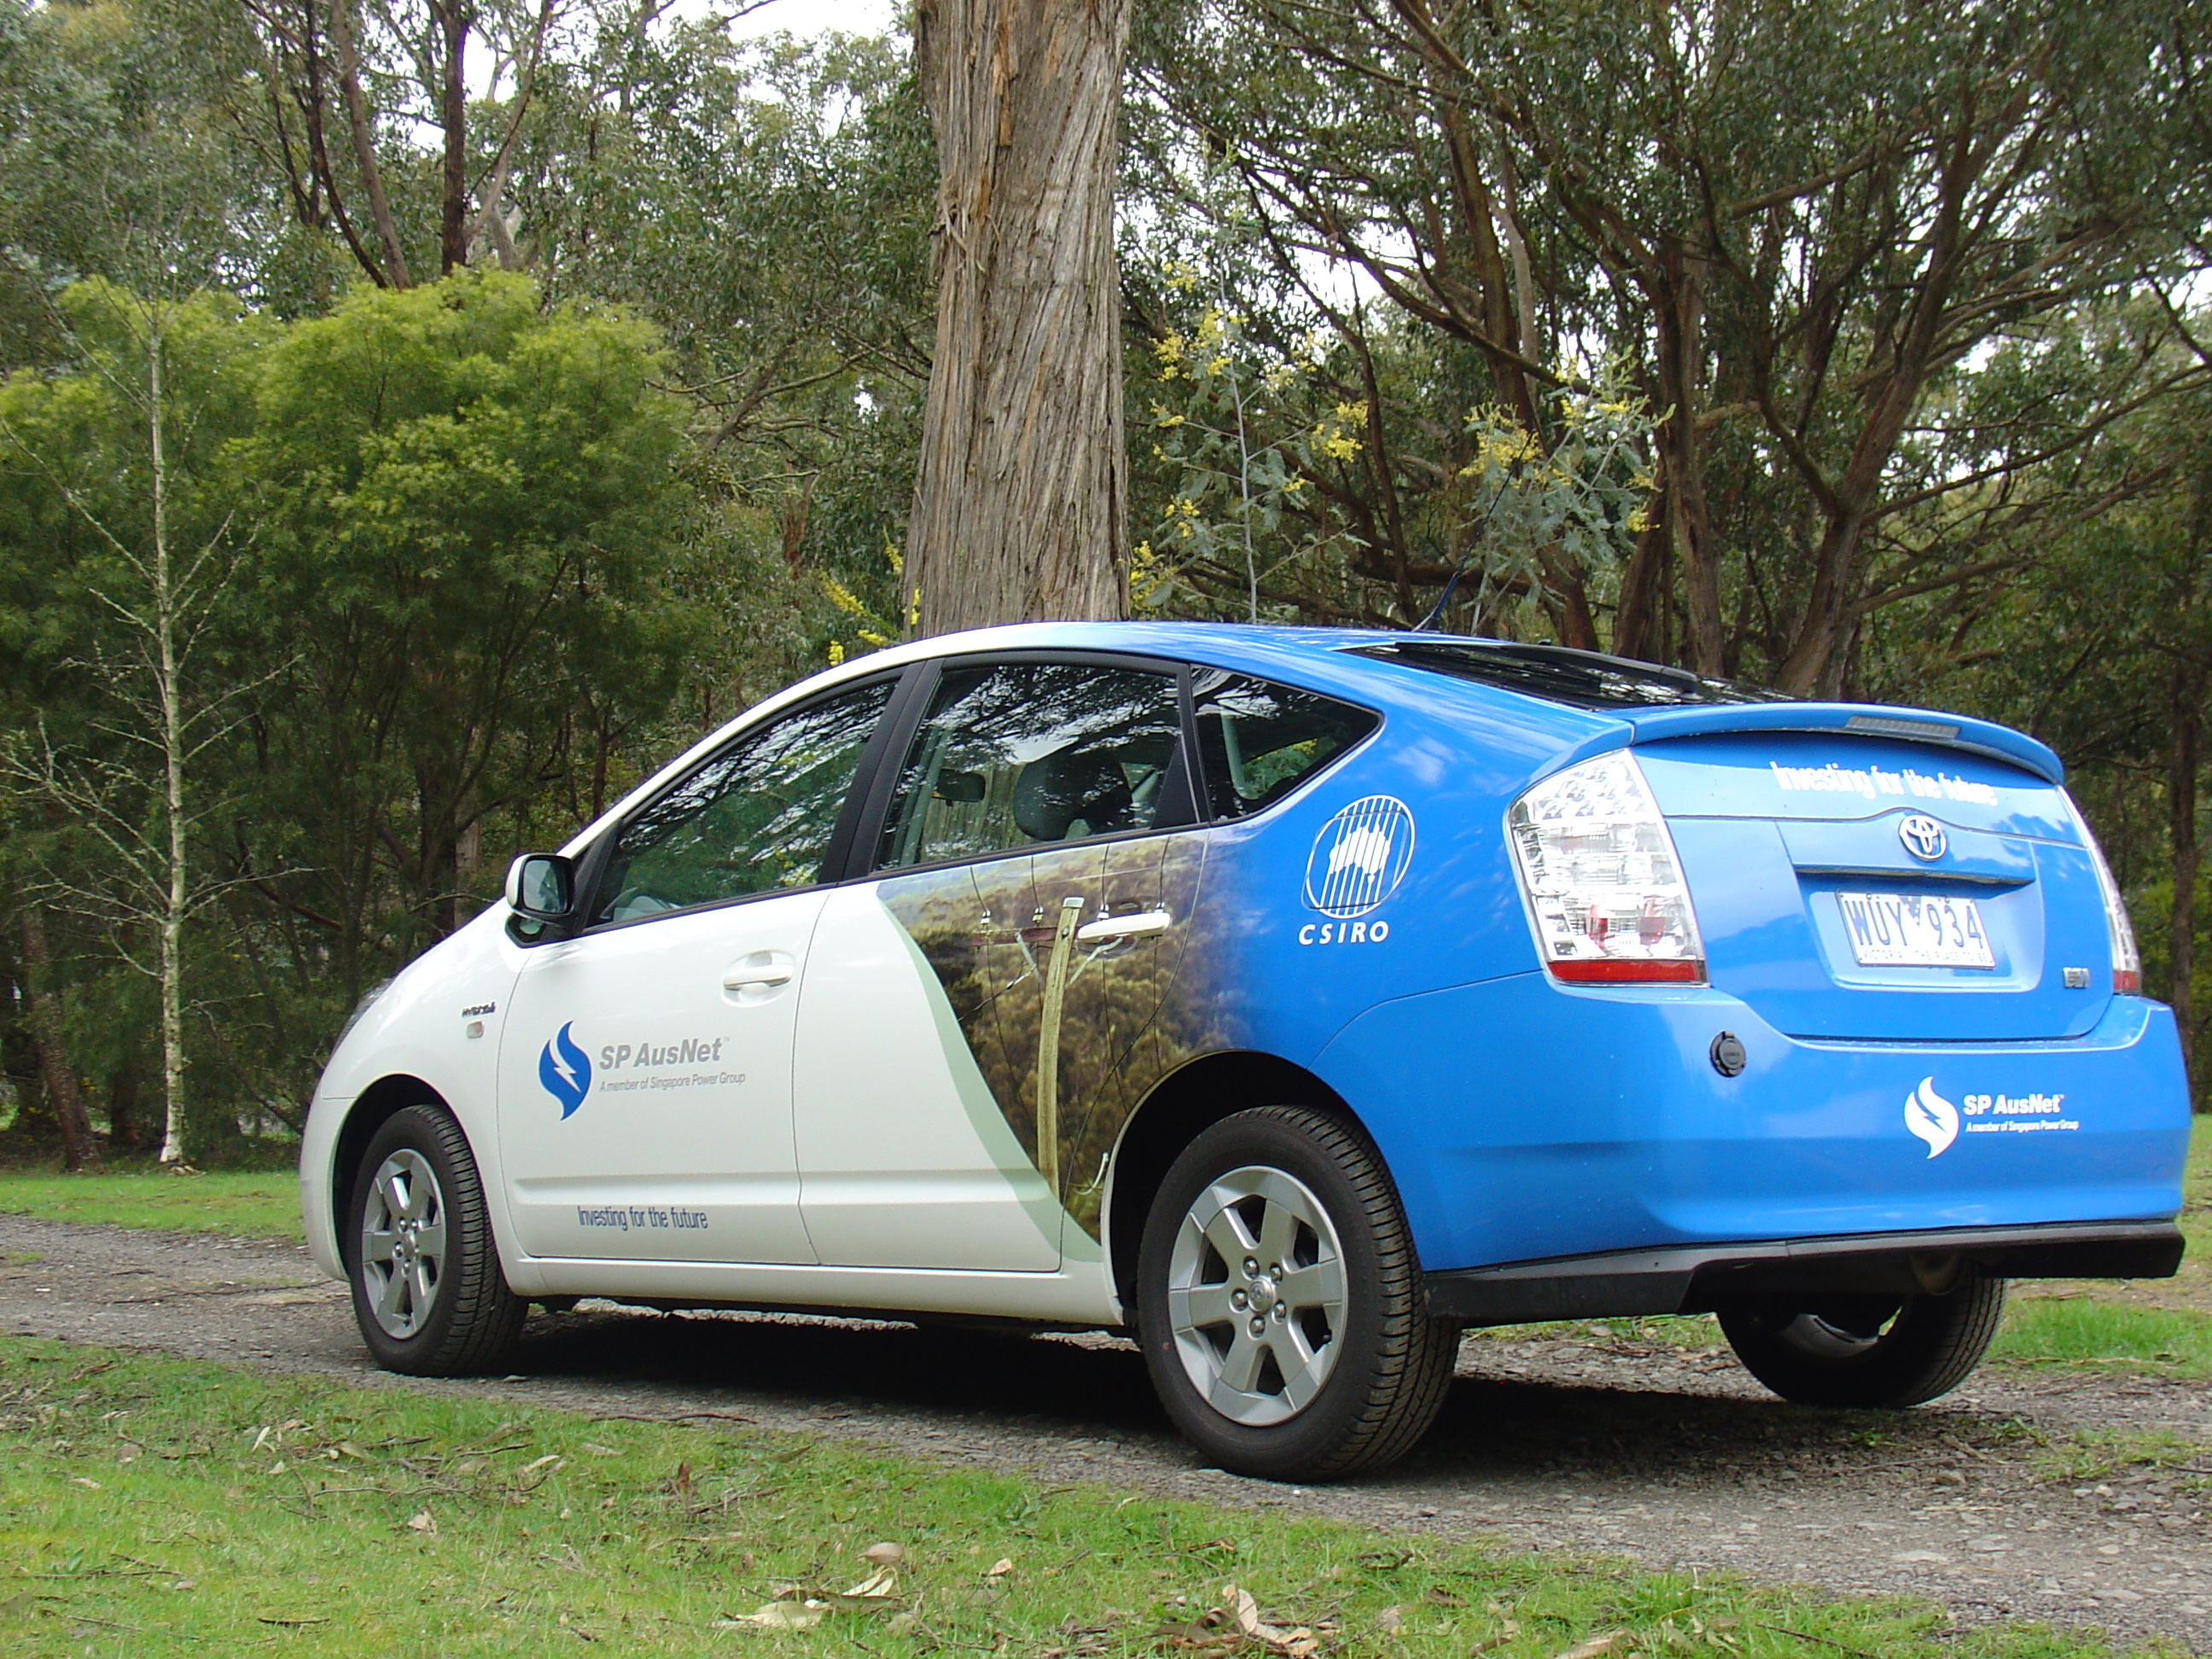 Electric cars: ugly as charged? - CSIROscope